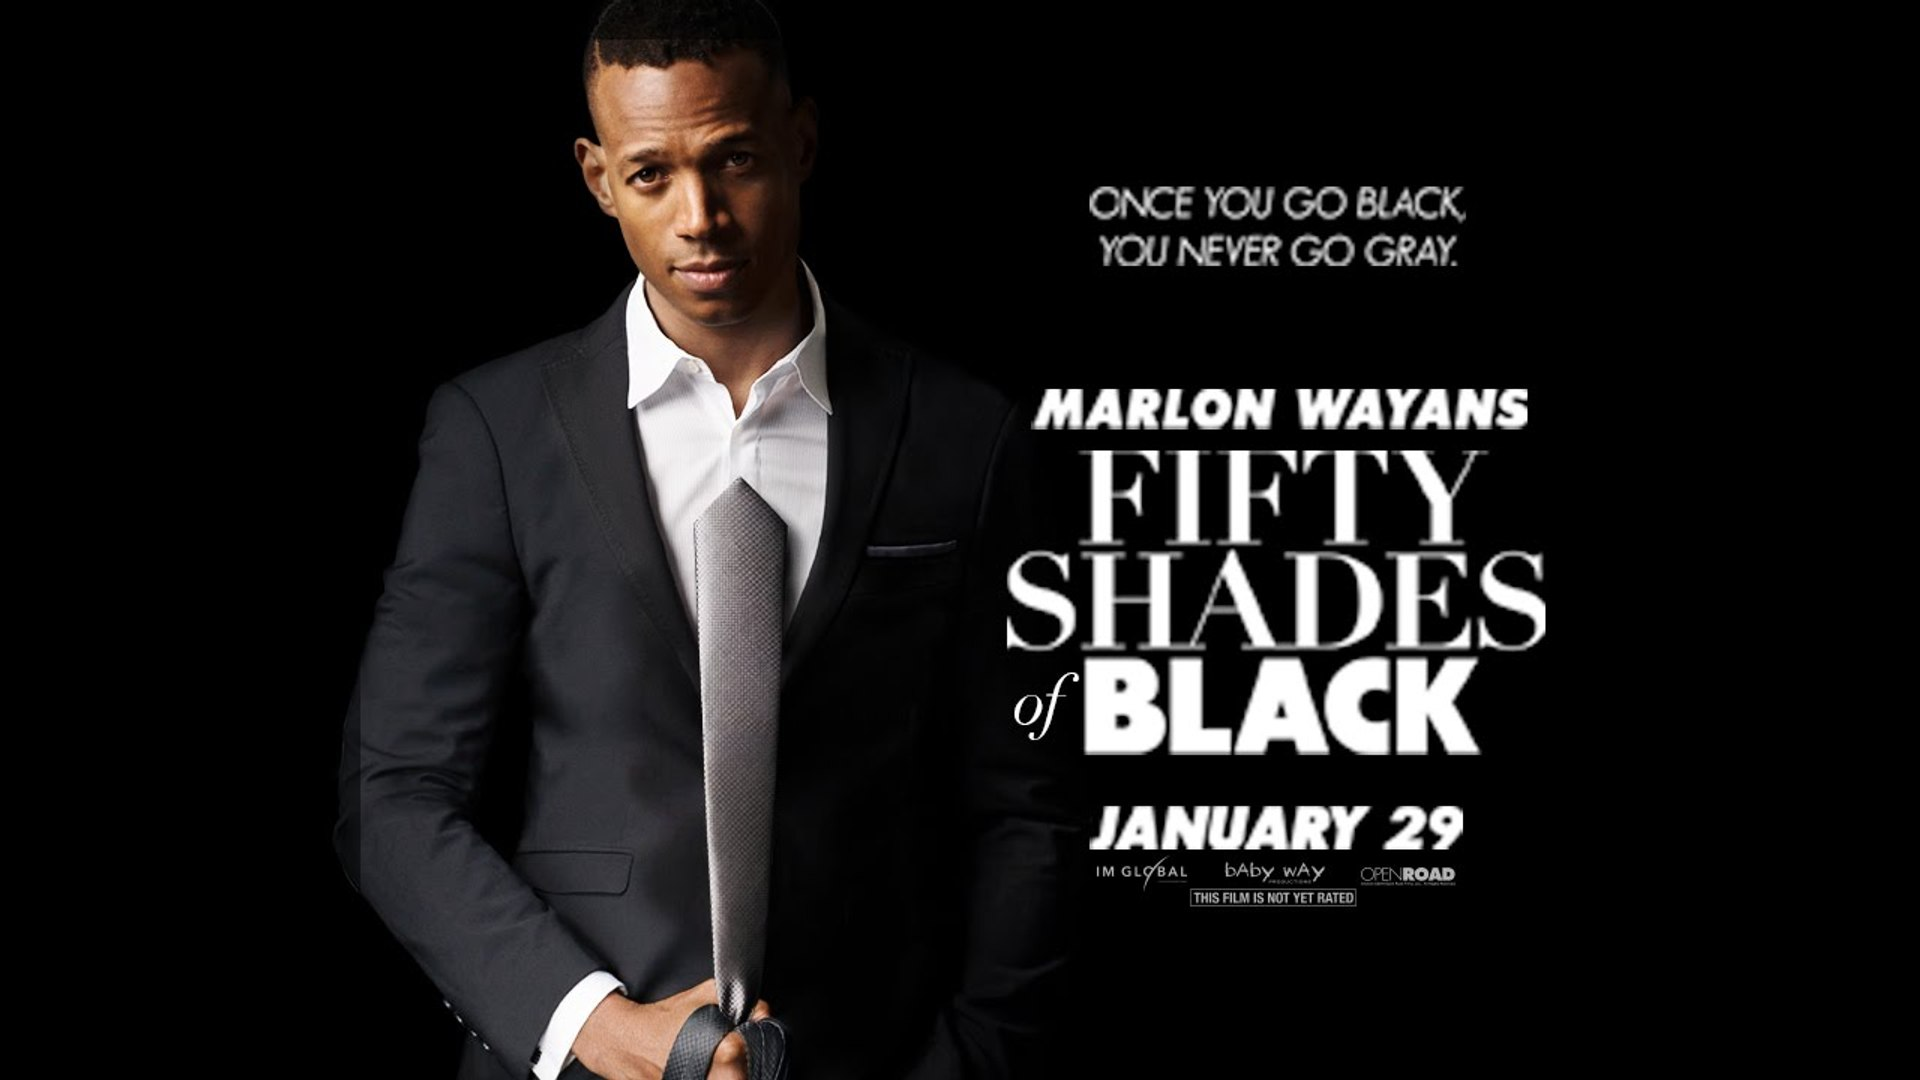 fifty shades of black full movie online free no download